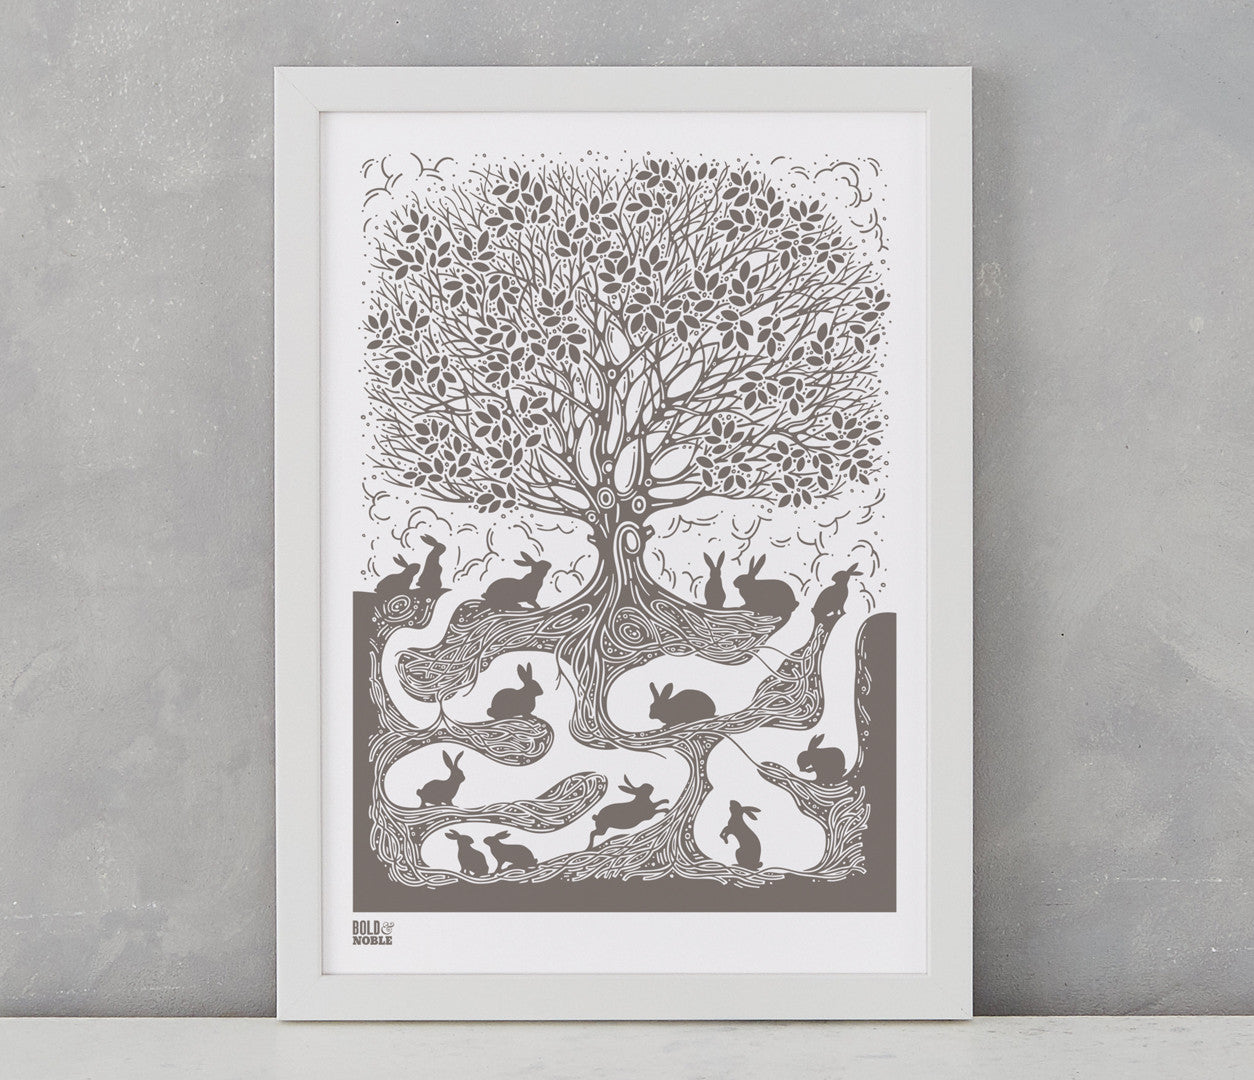 Pictures and Wall Art, Screen printed Burrow Print in mouse grey